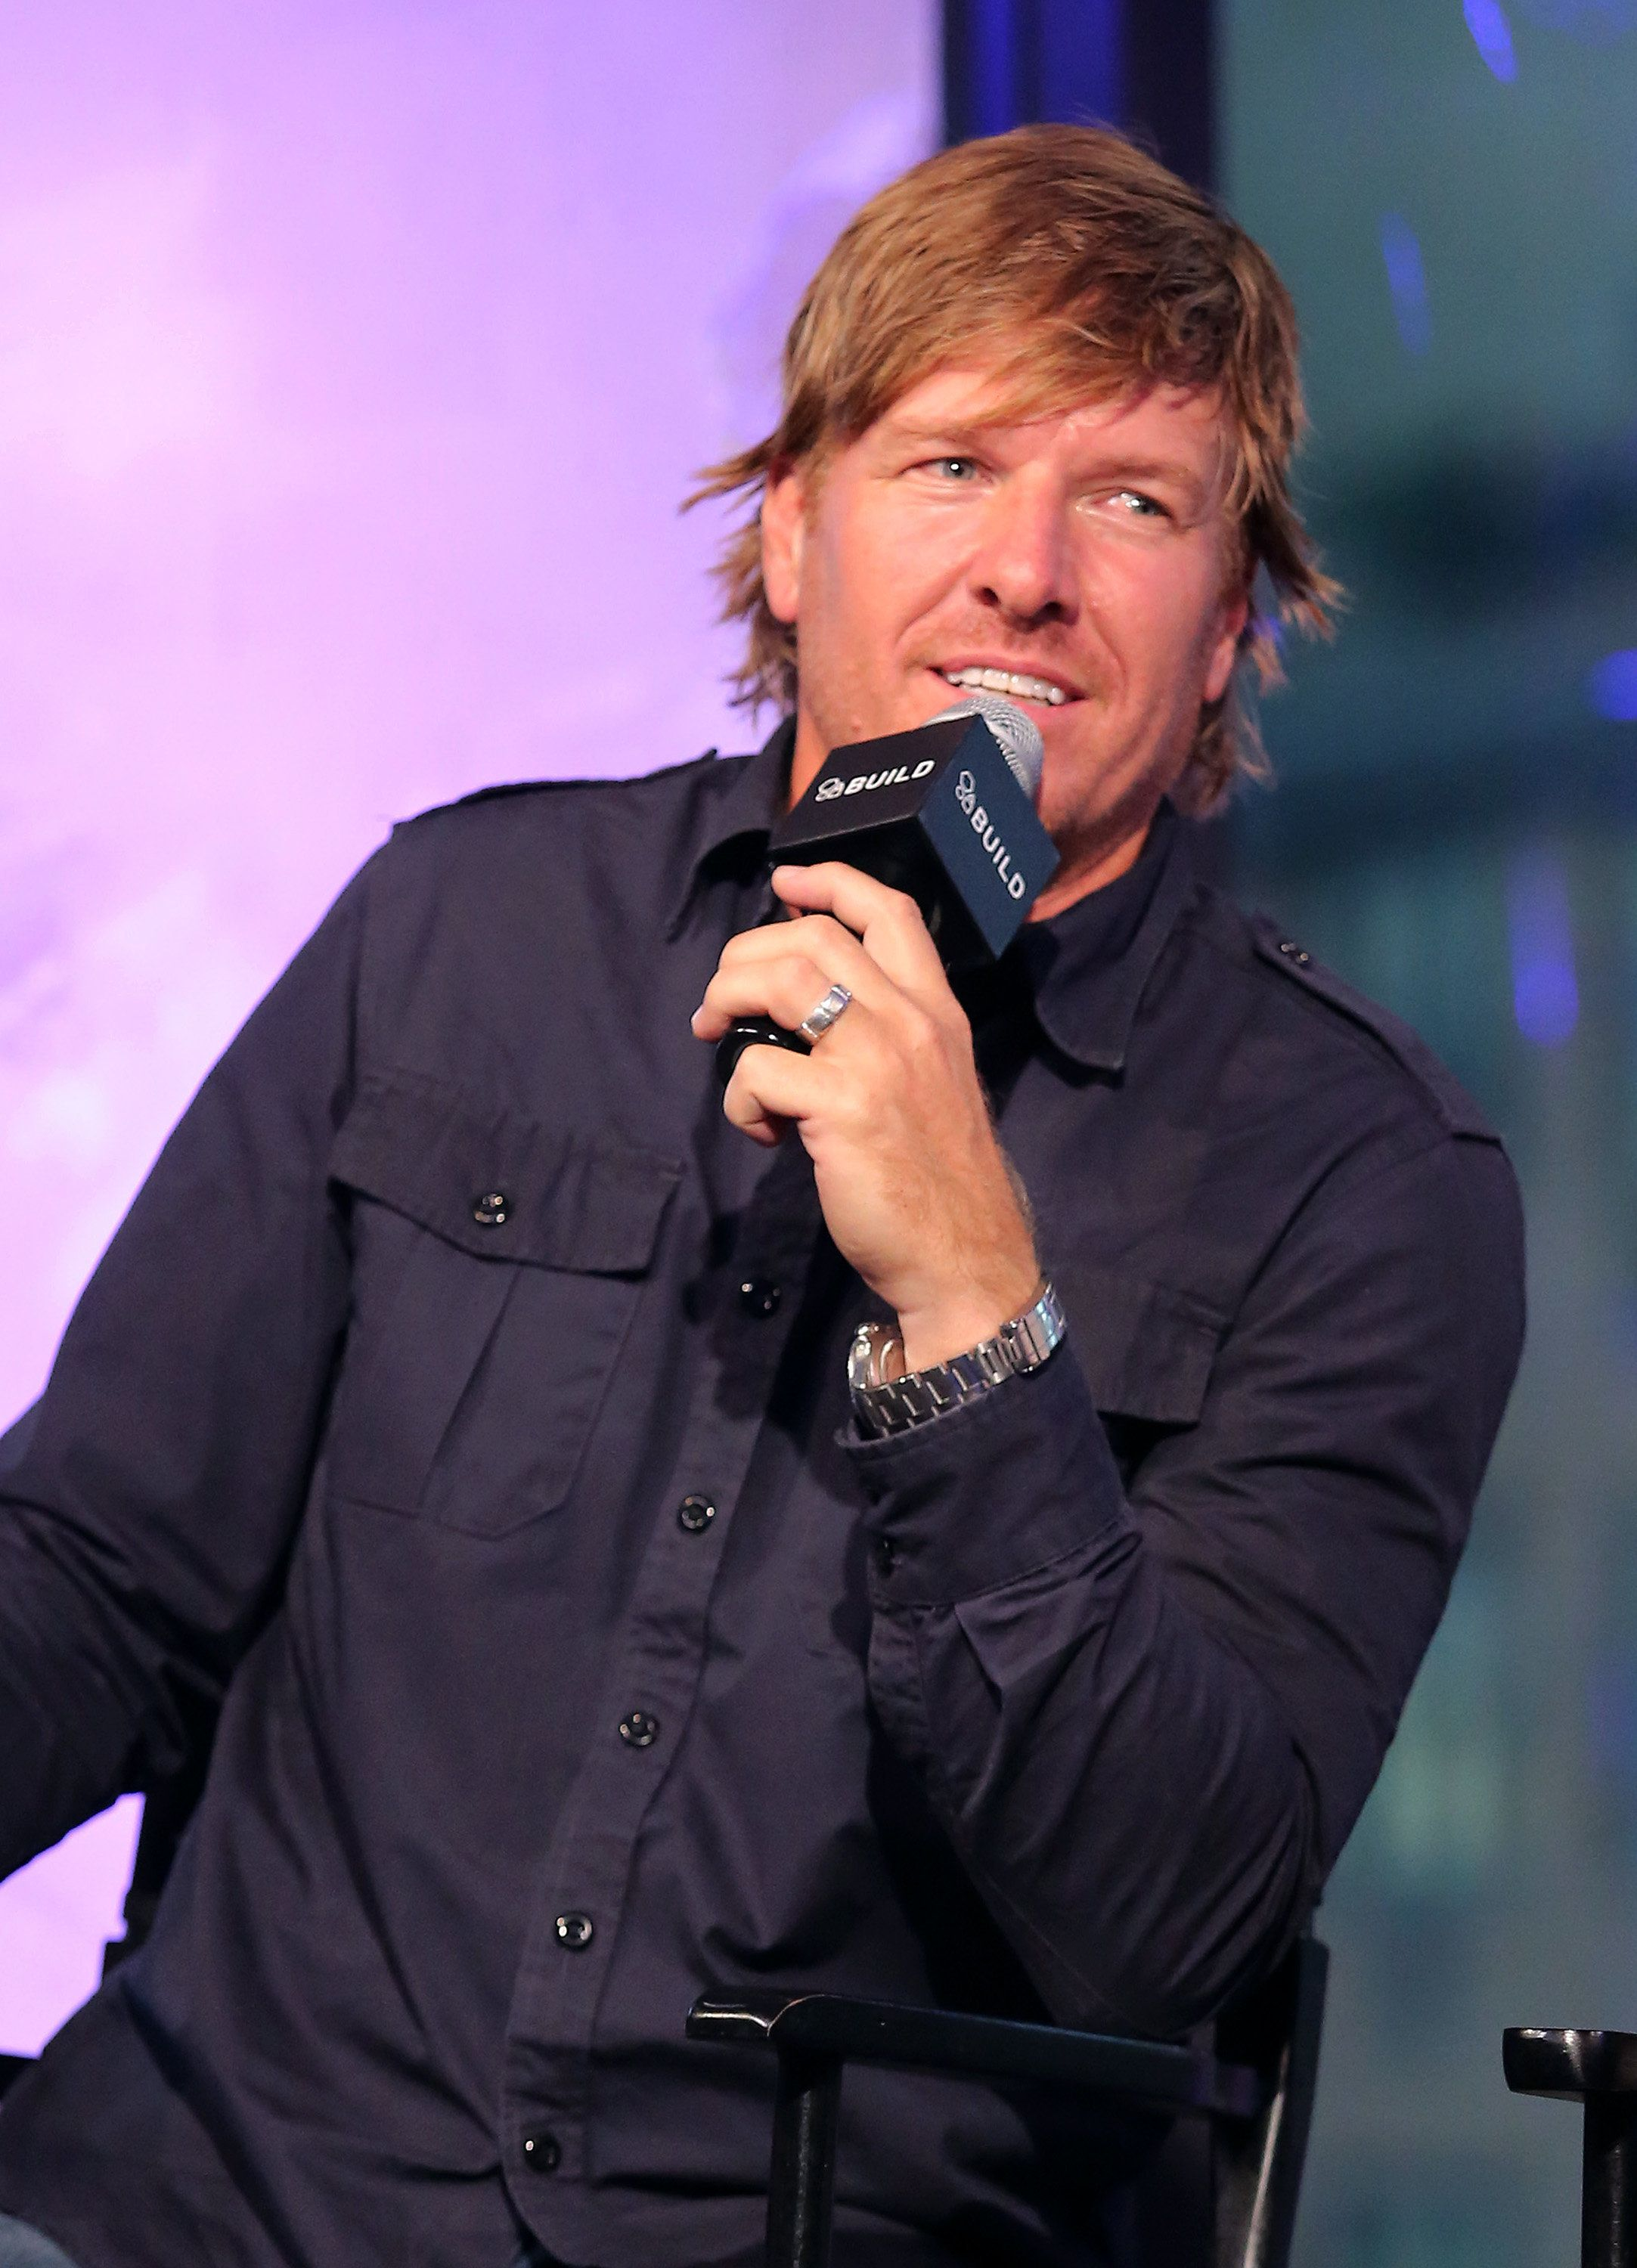 NEW YORK, NY - OCTOBER 19:  Chip Gaines appears to promote 'The Magnolia Story' during the AOL BUILD Series at AOL HQ on October 19, 2016 in New York City.  (Photo by Donna Ward/Getty Images)